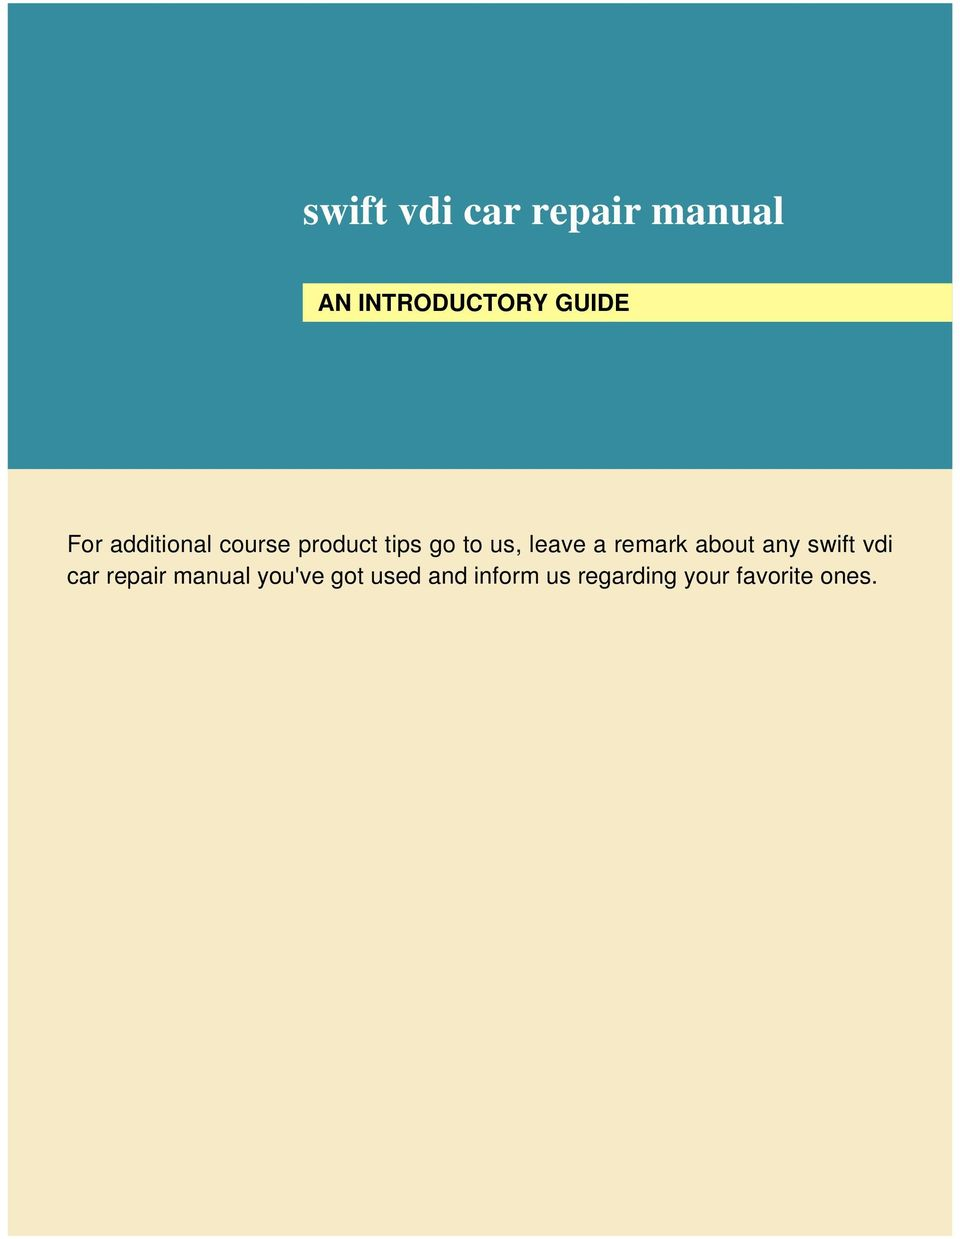 a remark about any swift vdi car repair manual